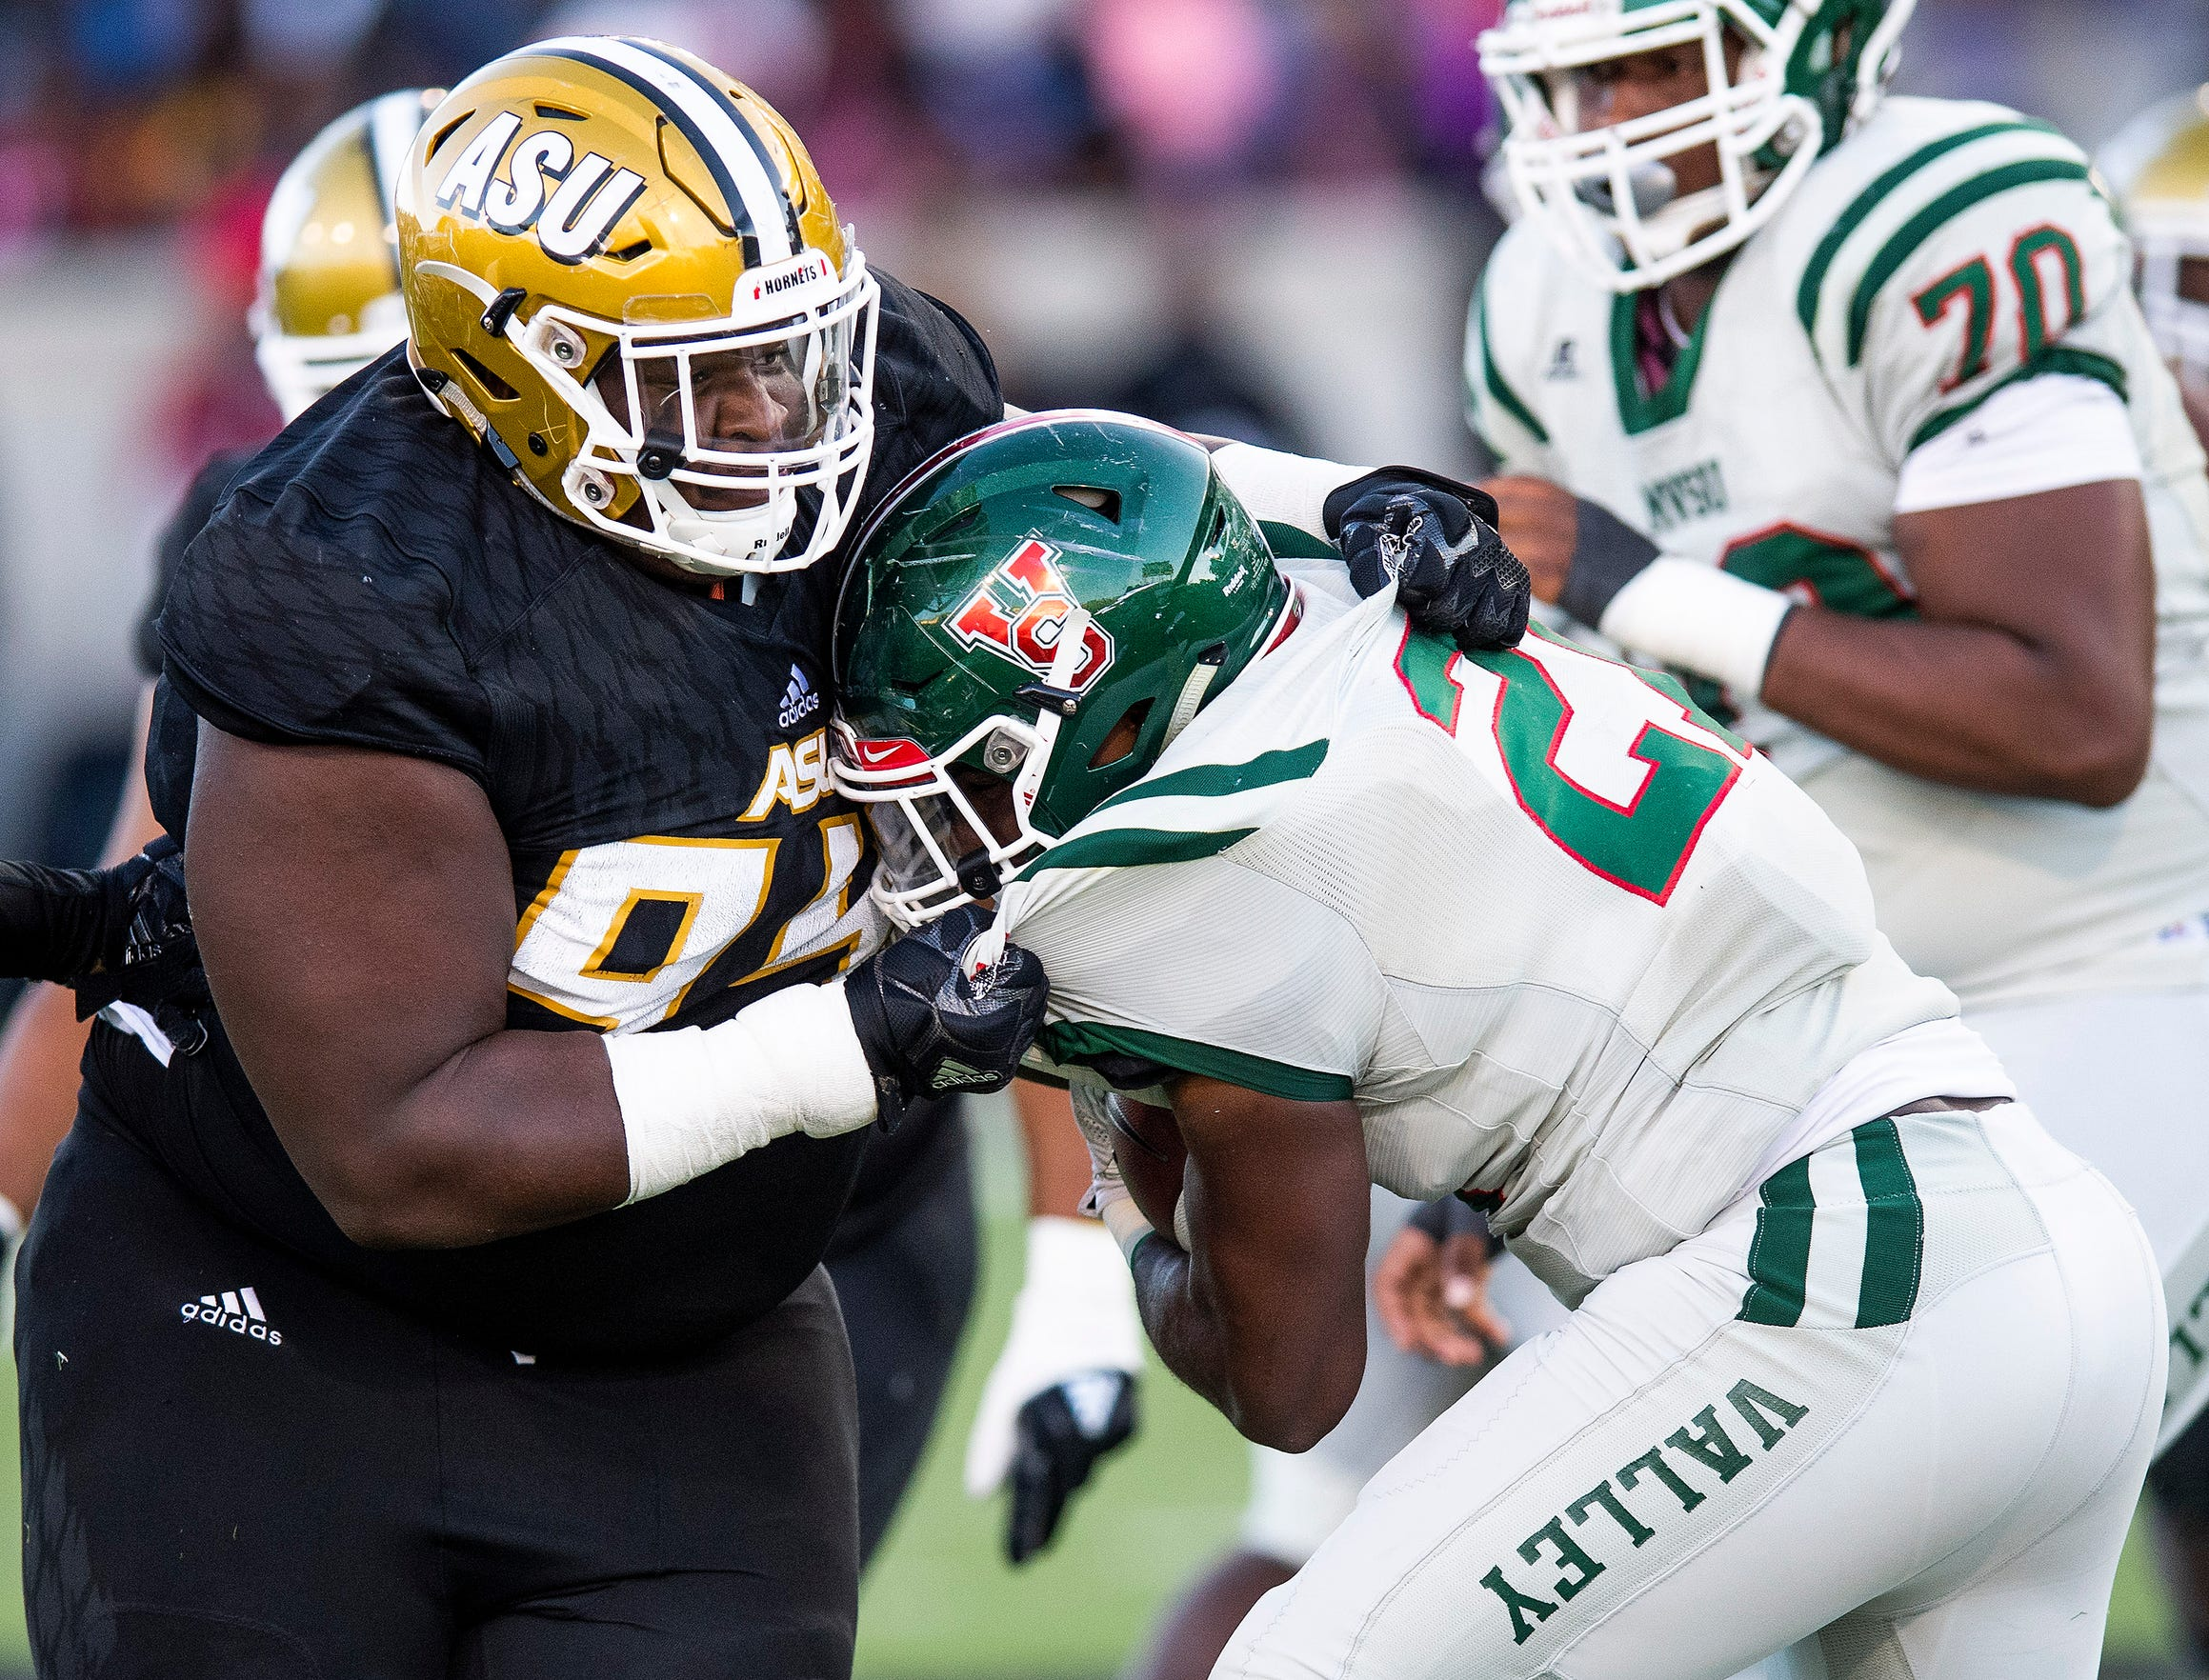 Mississippi Valley State running back Henry Isaiah Robinson (21) is stopped by Alabama State University defensive lineman Christian Clark (94) in the Turkey Day Classic at Hornet Stadium on the ASU campus in Montgomery, Ala., on Thanksgiving Day, Thursday November 22, 2018.